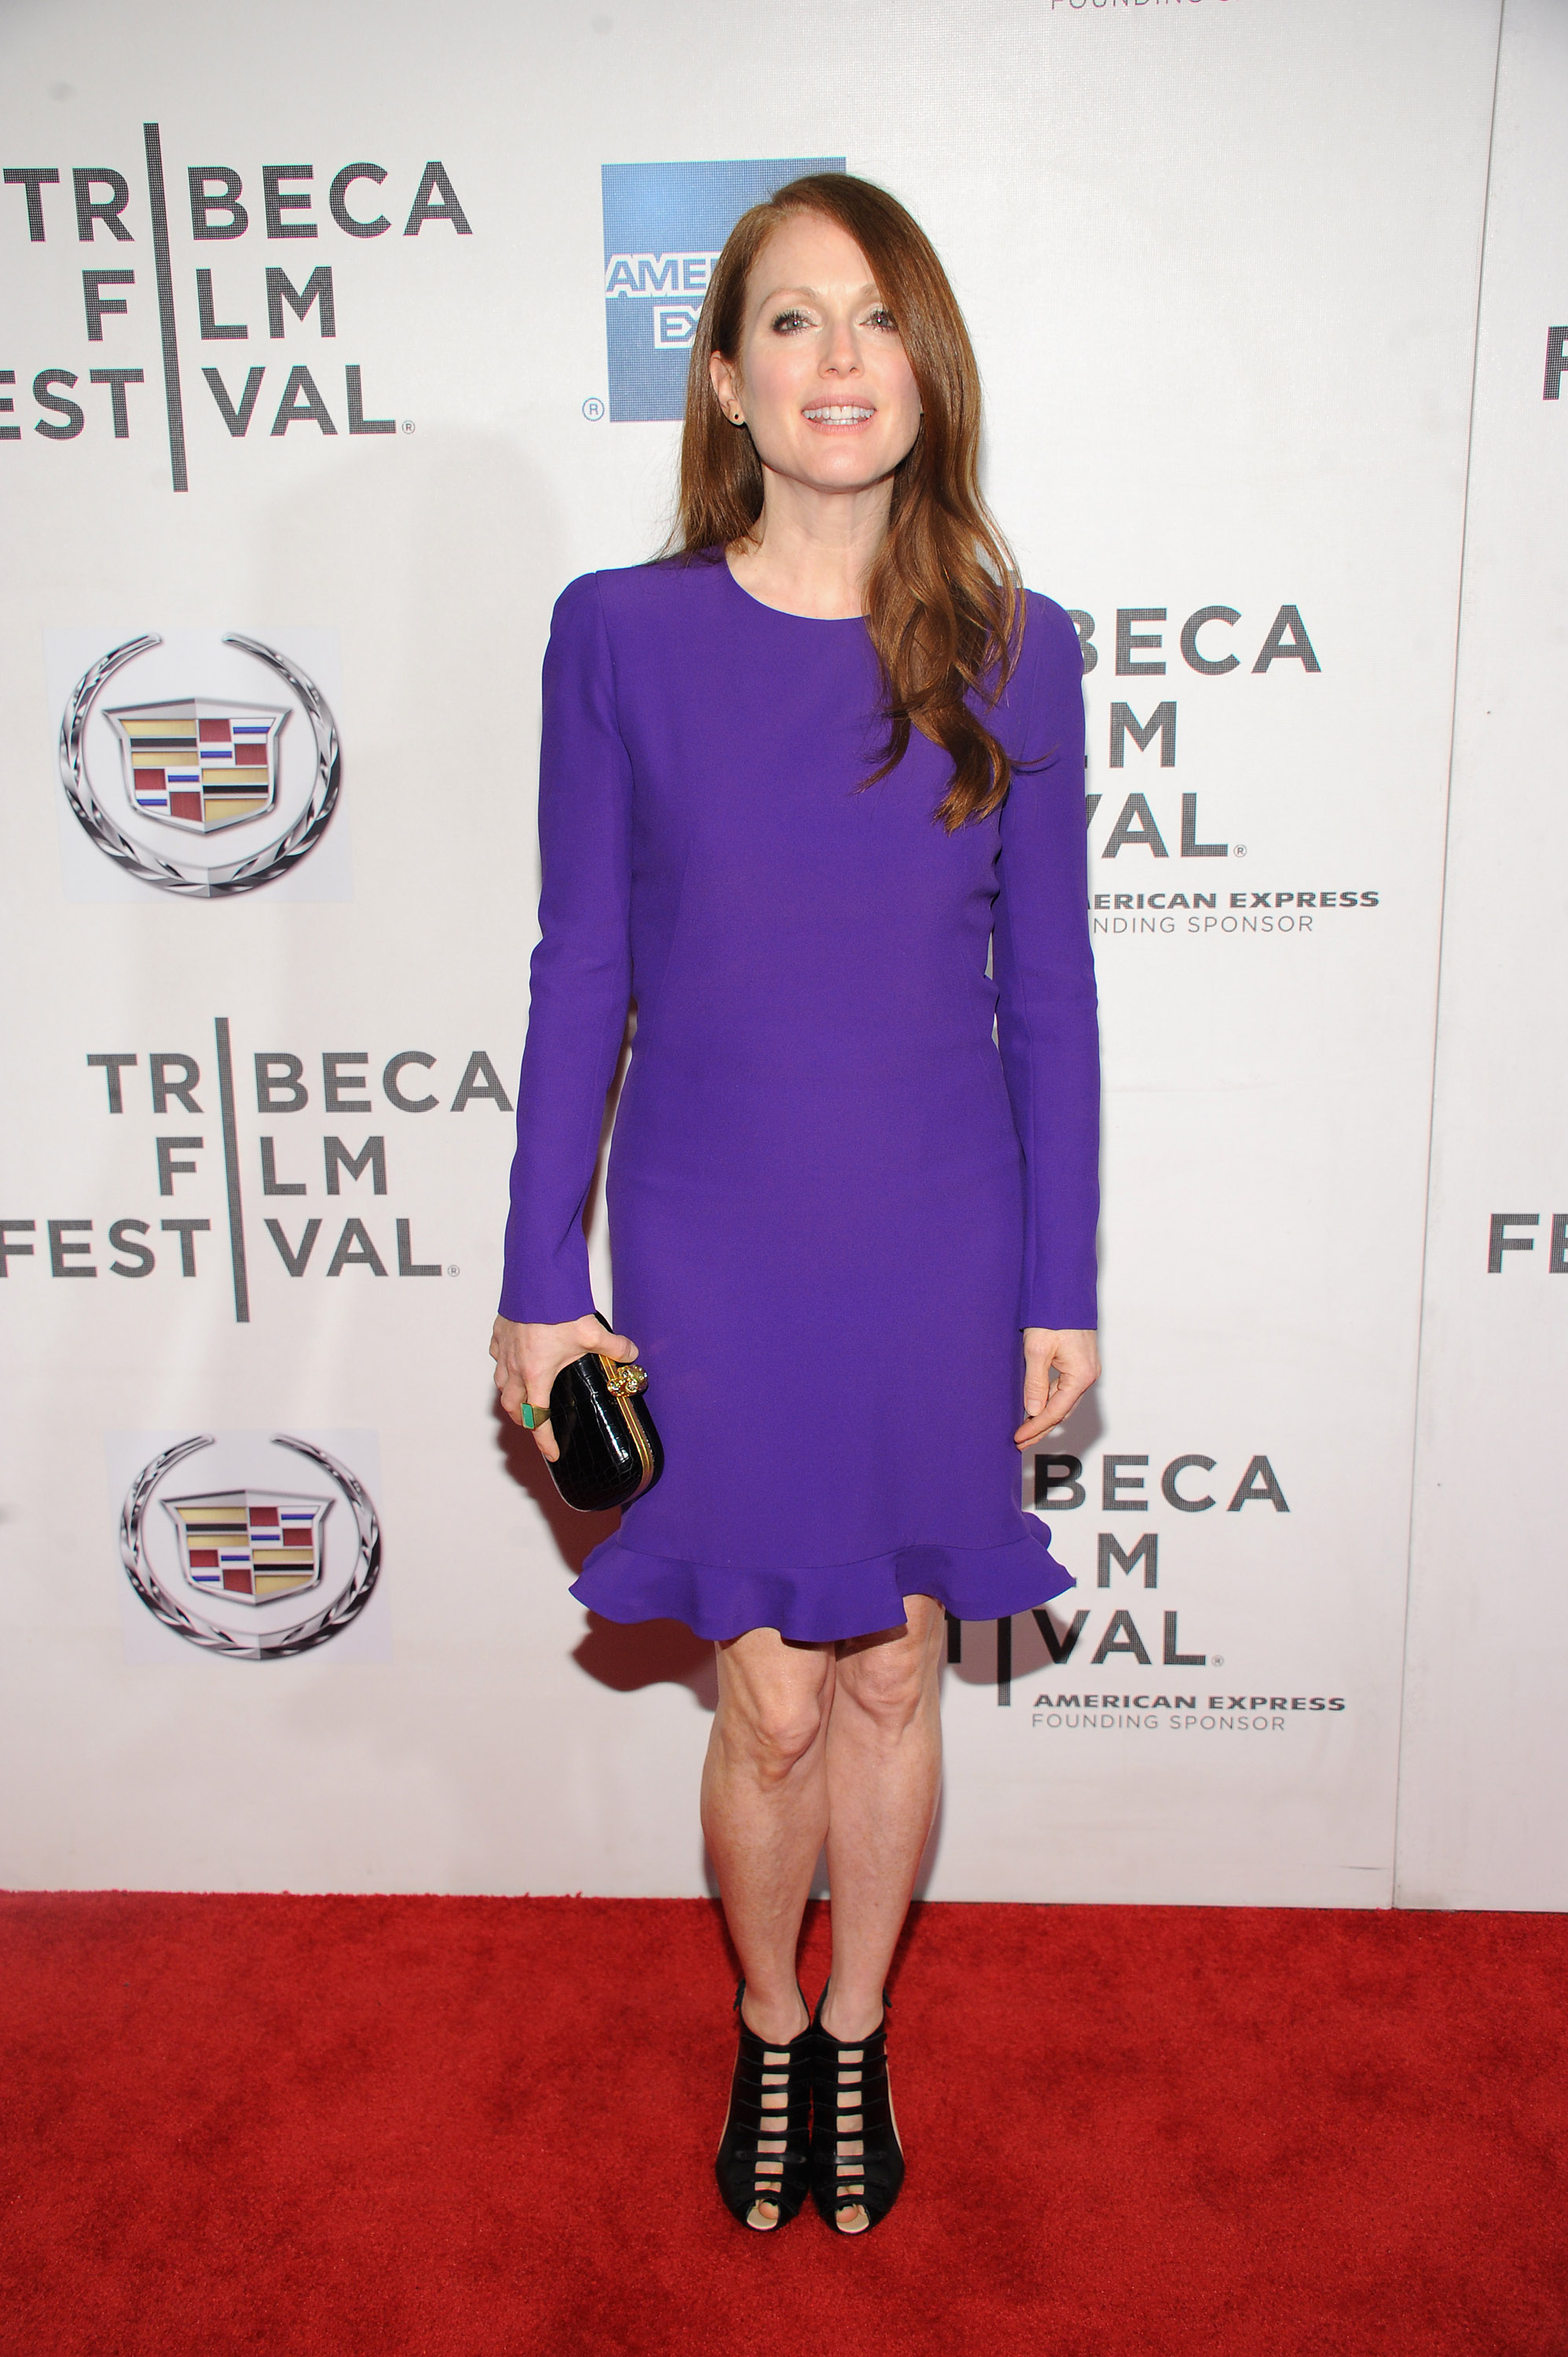 Julianne Moore stunned in purple for the premiere of The English